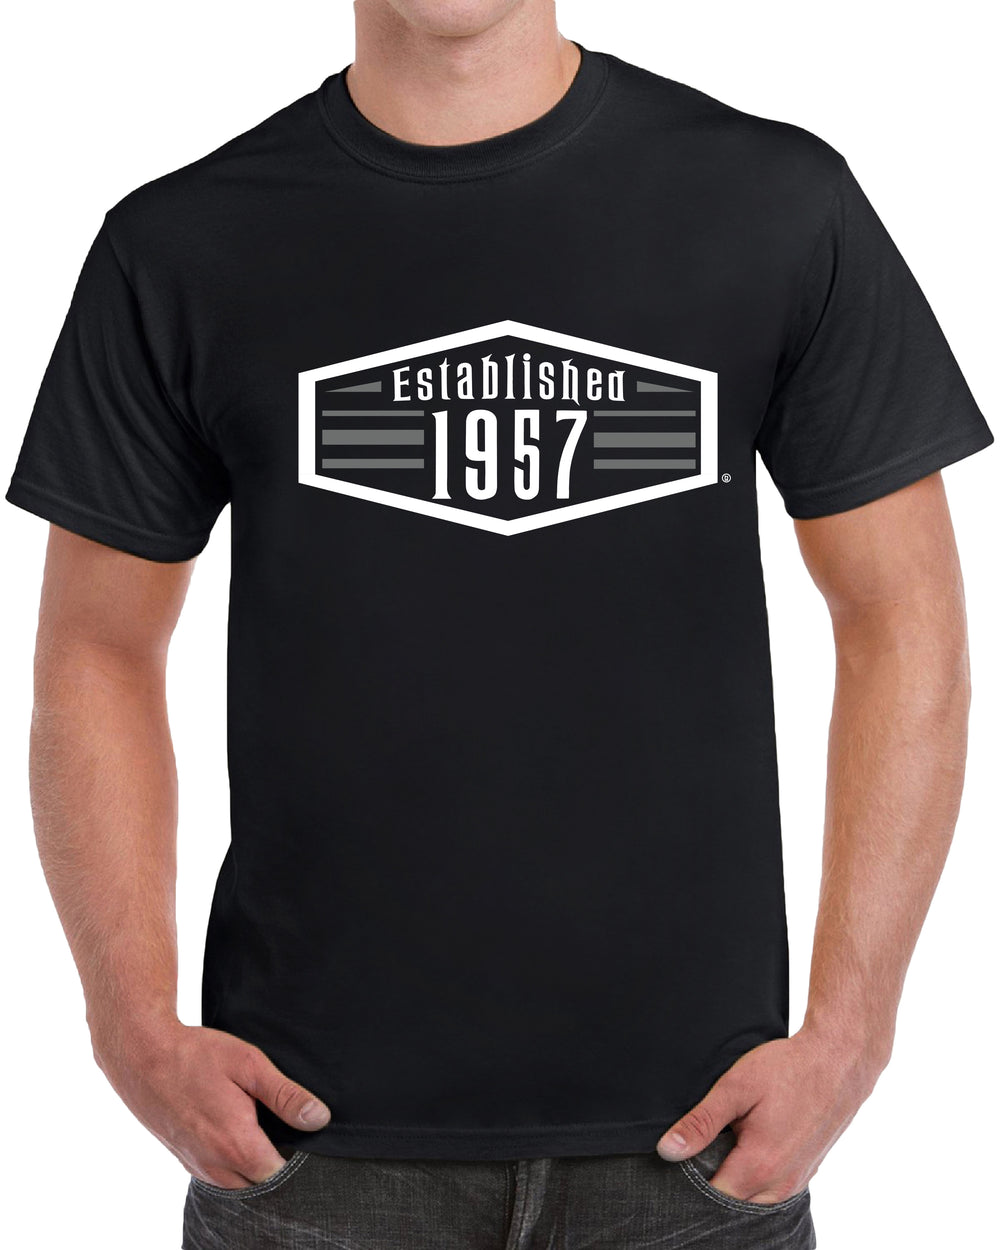 Established 1957 - 62nd Birthday - Gray Print